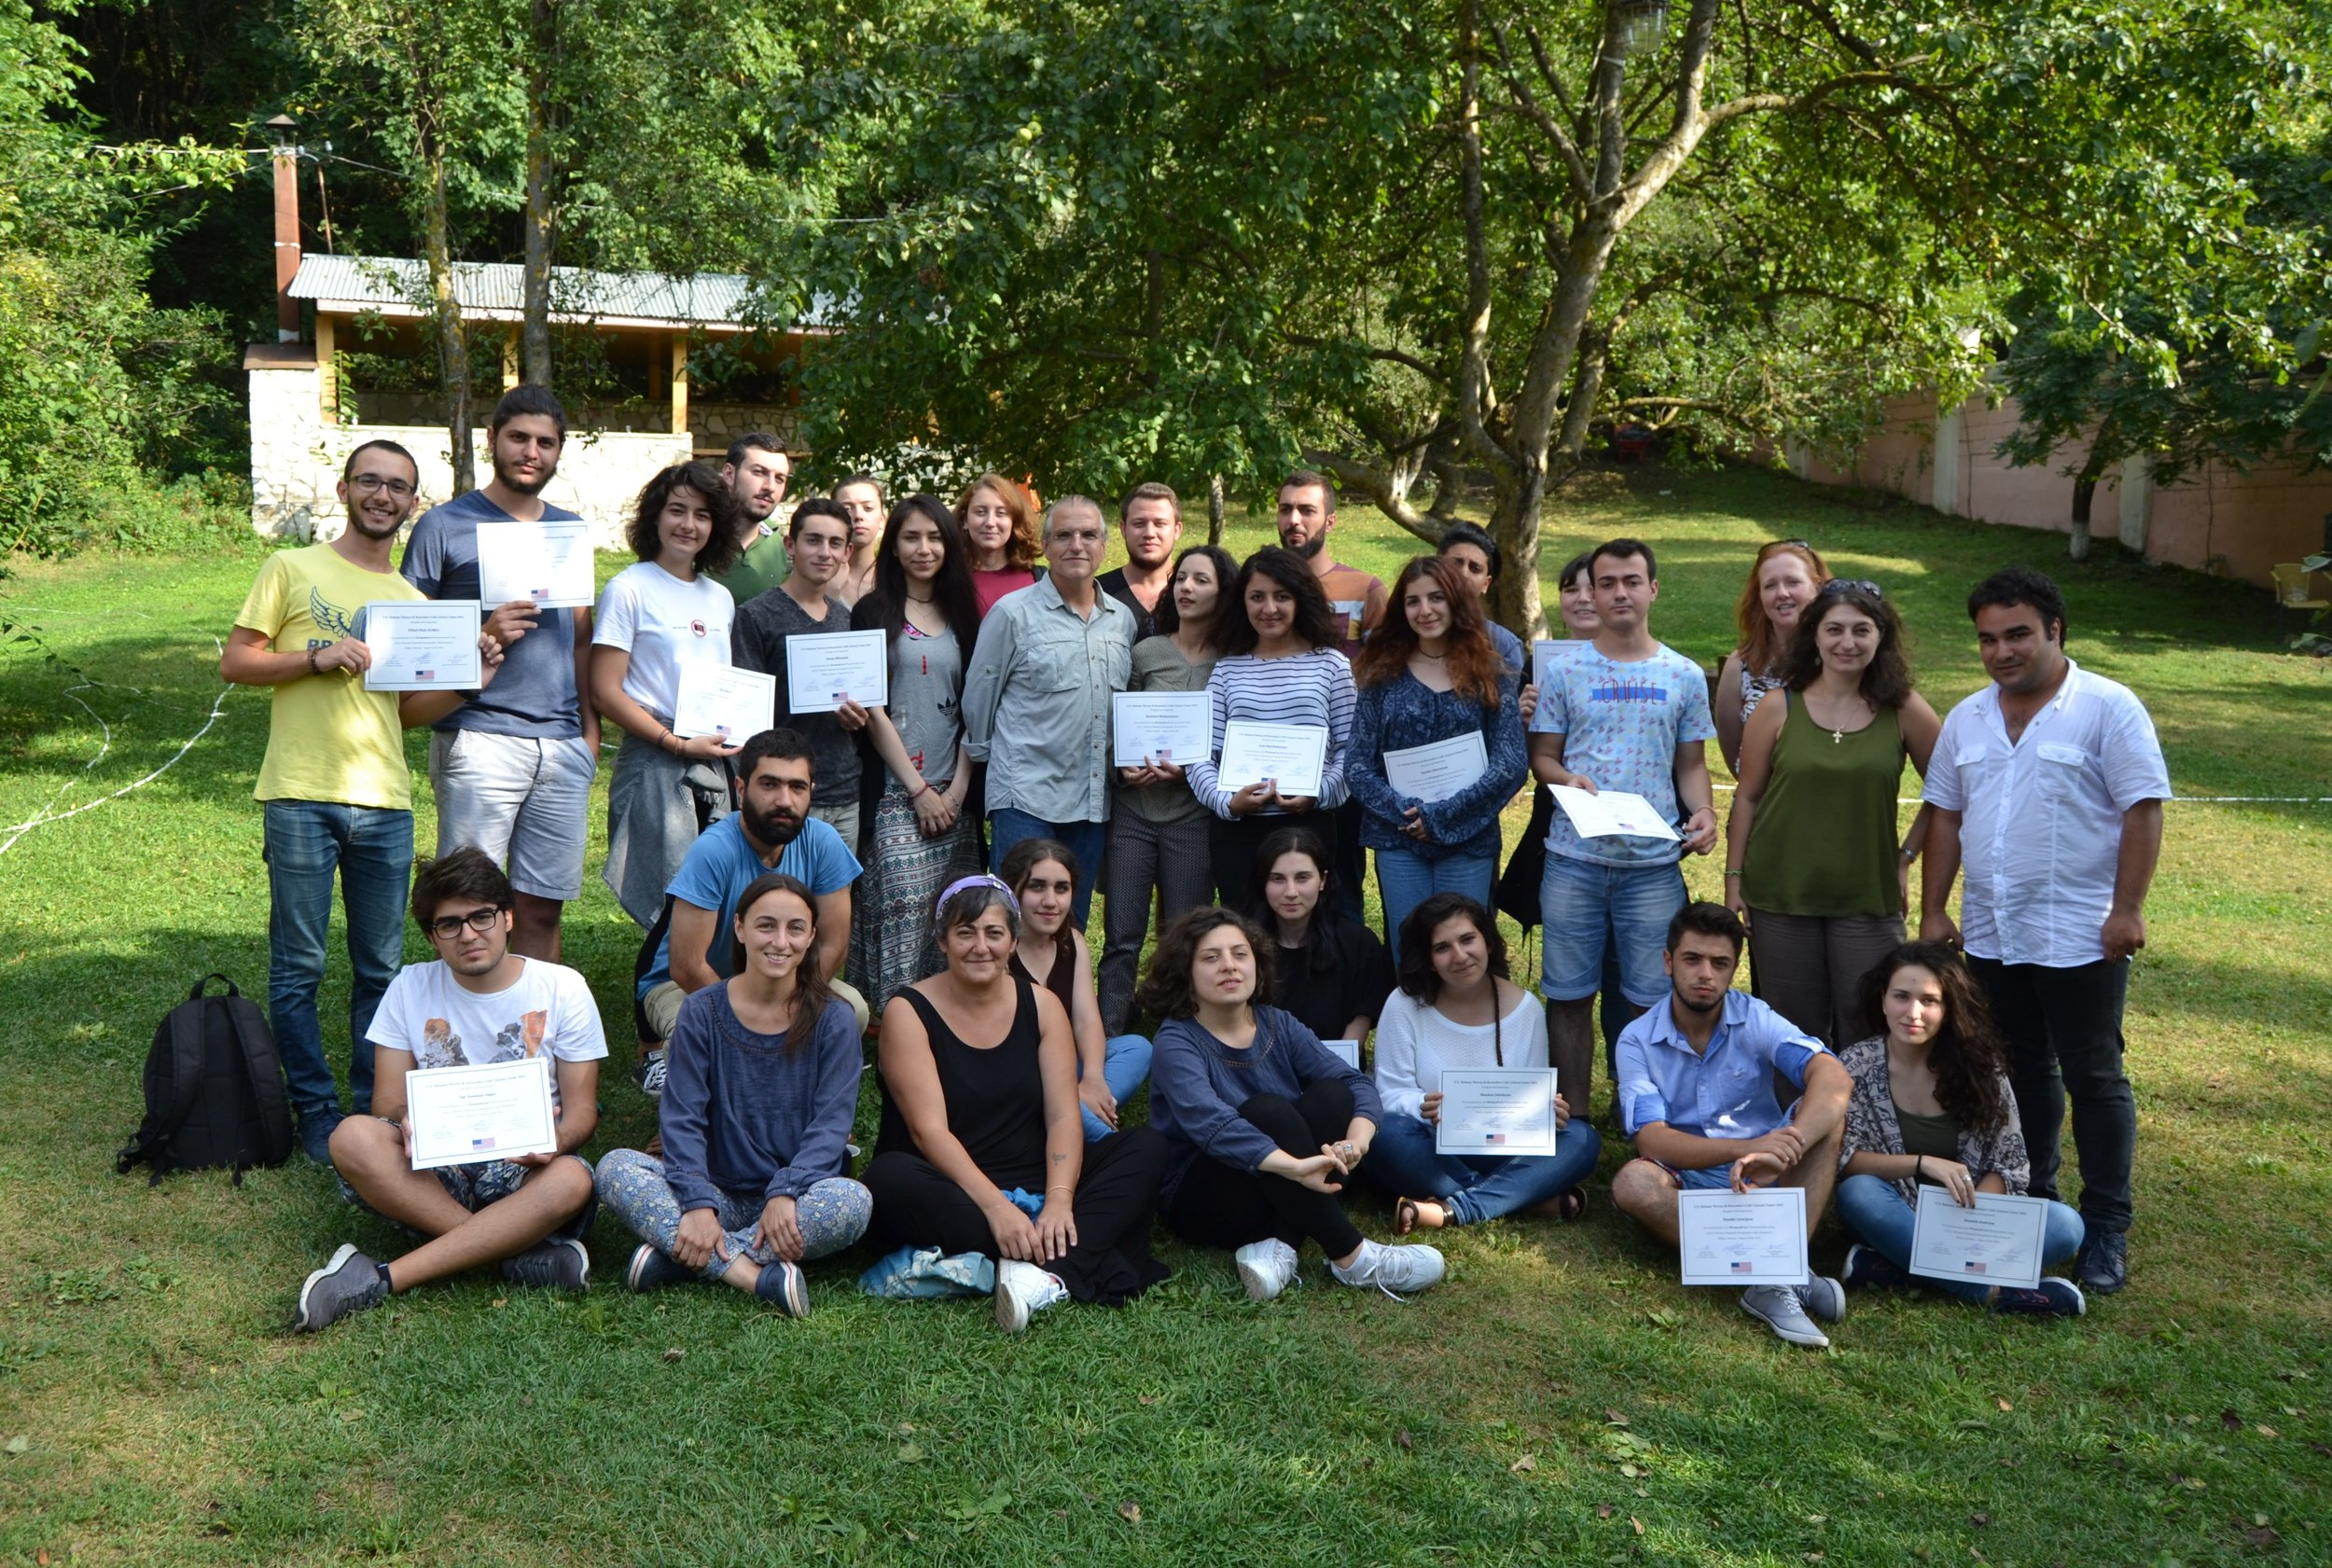 After awarding certificates for participating in the photojournalism camp,August 28, 2016 Dilijan, Armenia